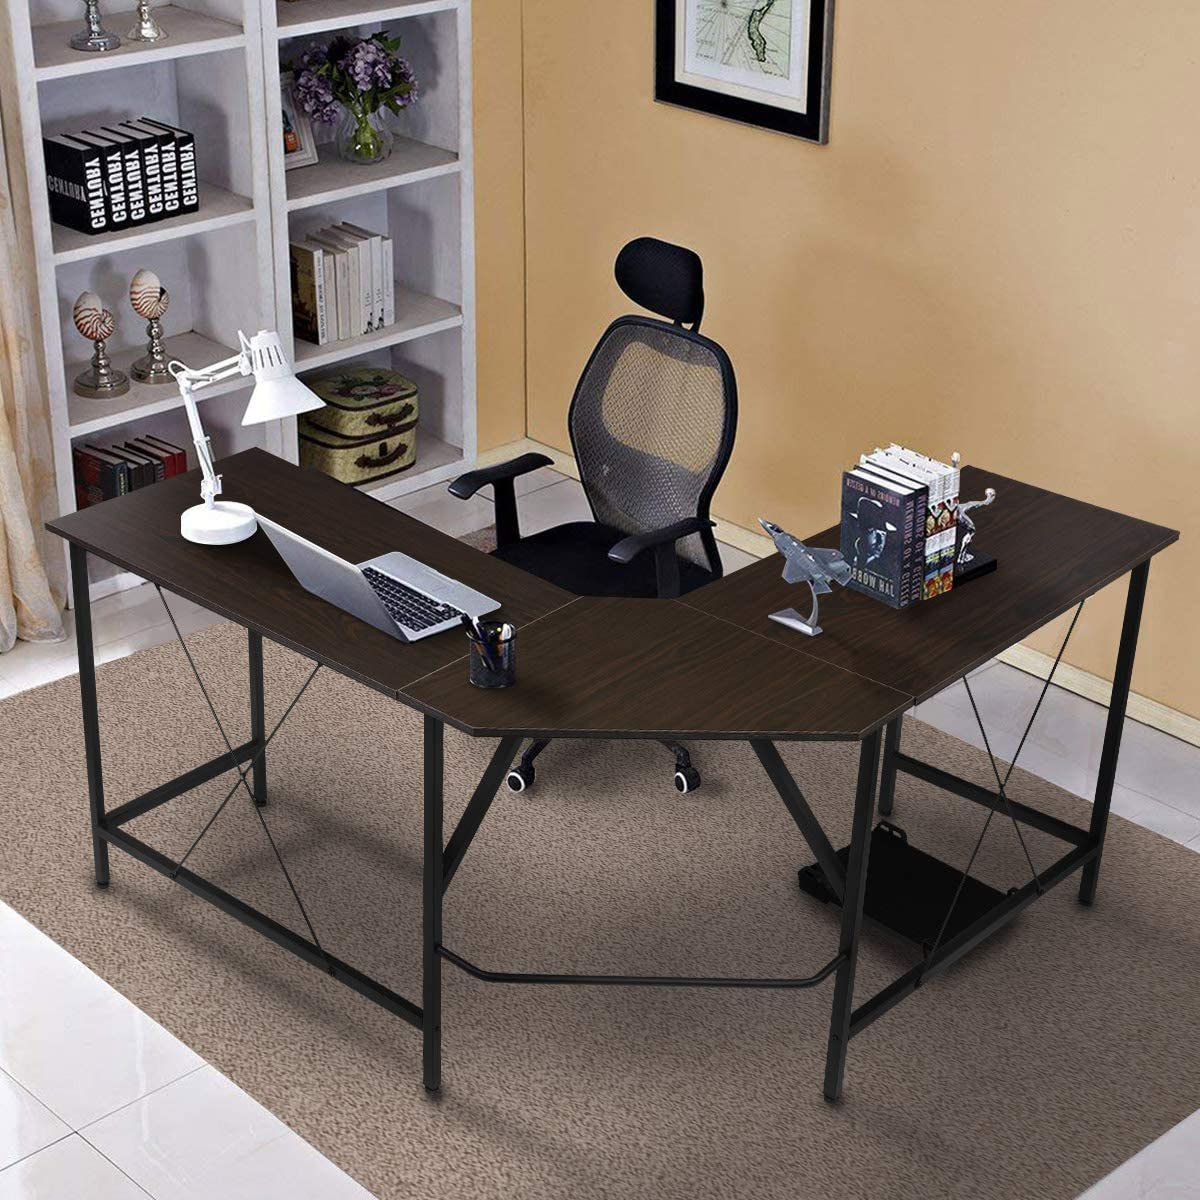 Sekey Home L-Shaped Computer Corner Desk, Writing Workstation, Gaming Desk with Shelf for Home Office, Easy to Assemble, Smoky Oak